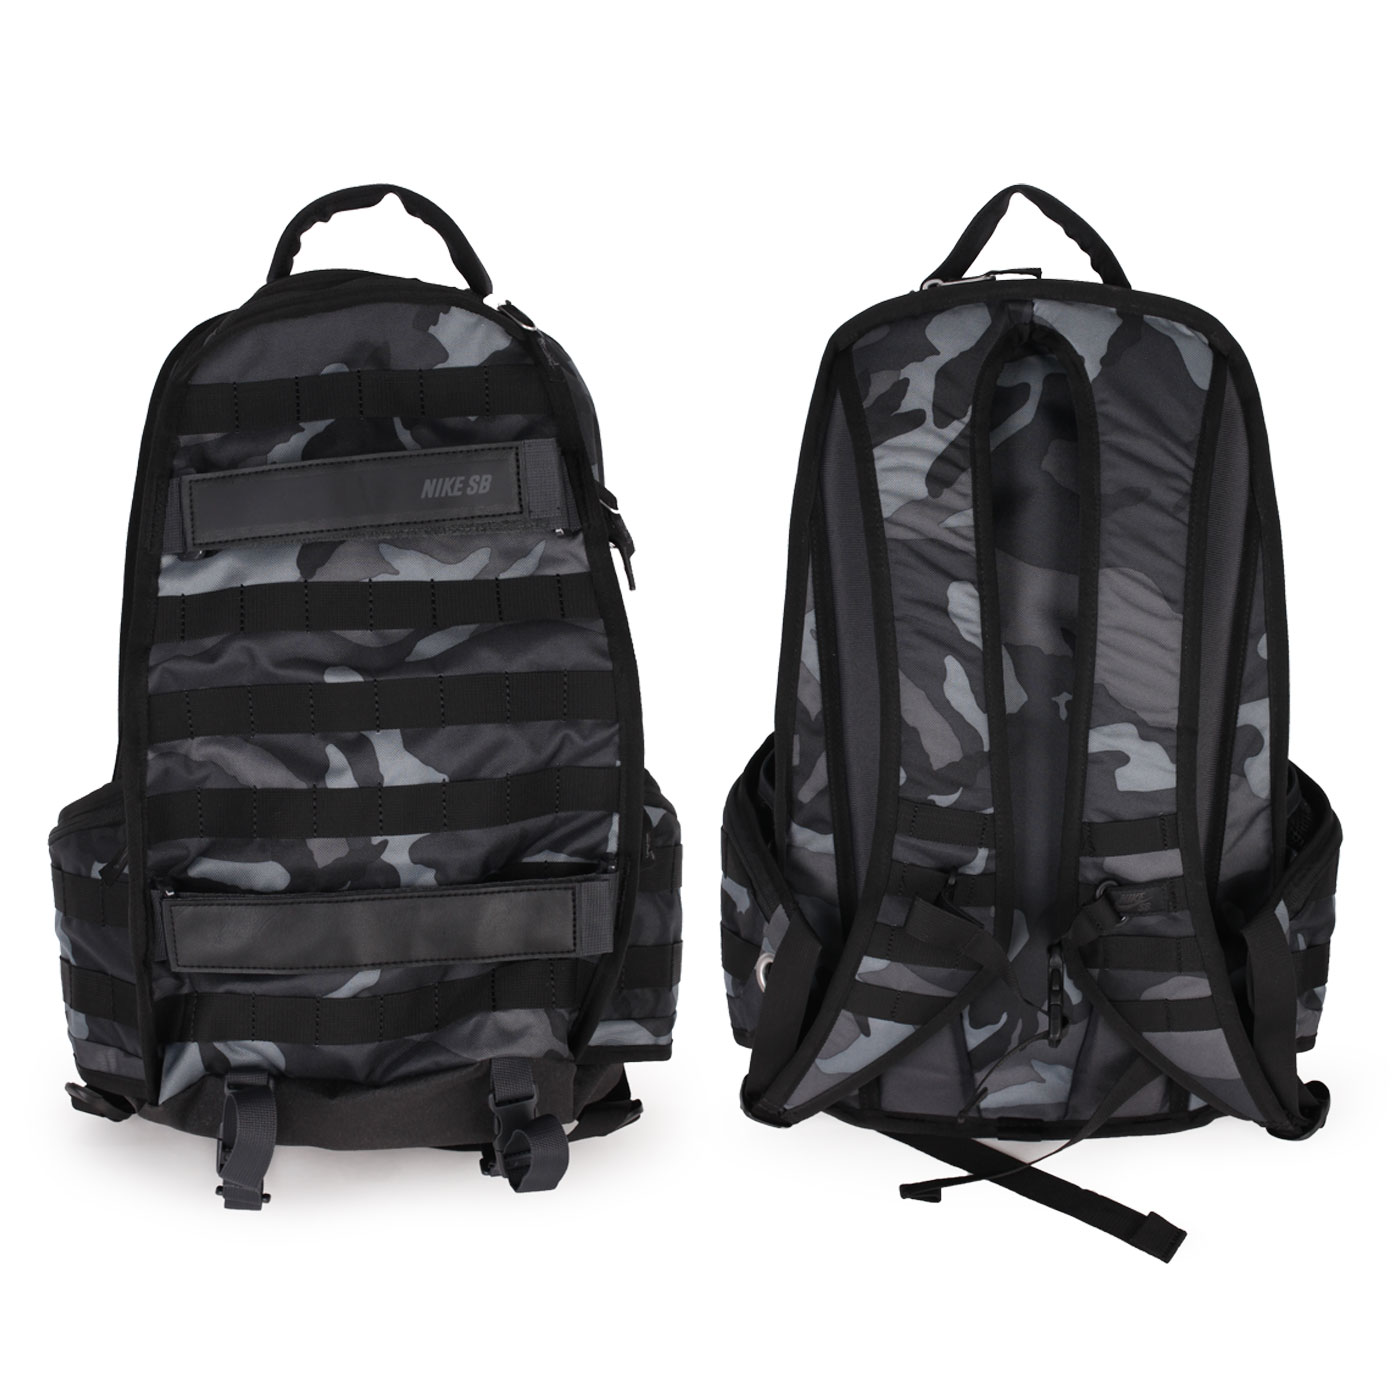 39741b19a5f8 Buy Nike nike nike sb rpm backpack BA5130005 b after taiwans official  website direct mail import movement in Cheap Price on Alibaba.com